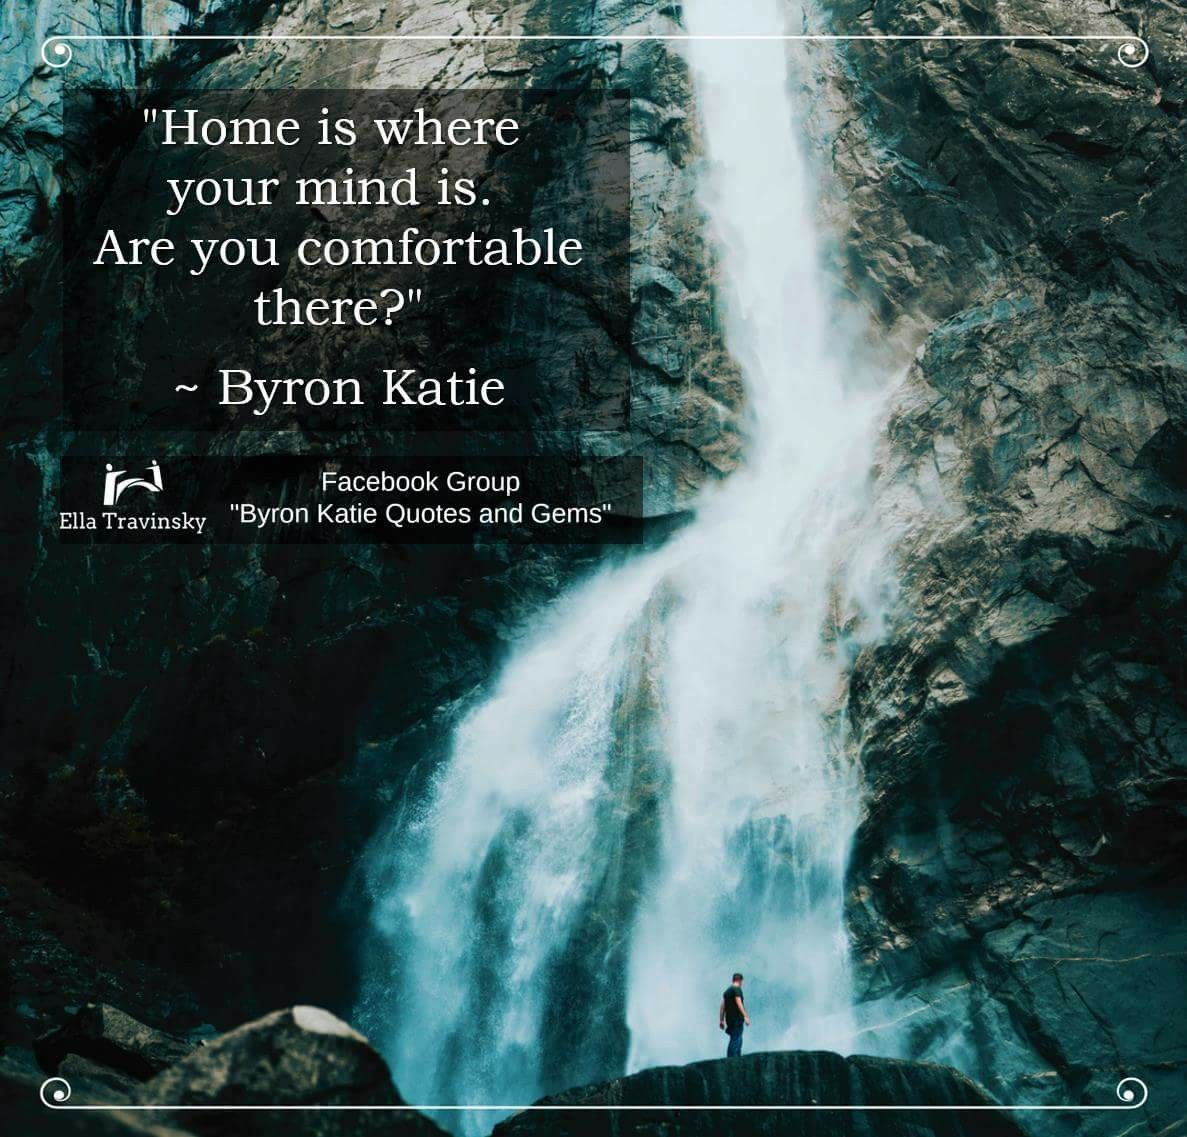 Byron Katie Quotes Mind Home  Sandhya Kodikanda  Pinterest  Byron Katie Thoughts